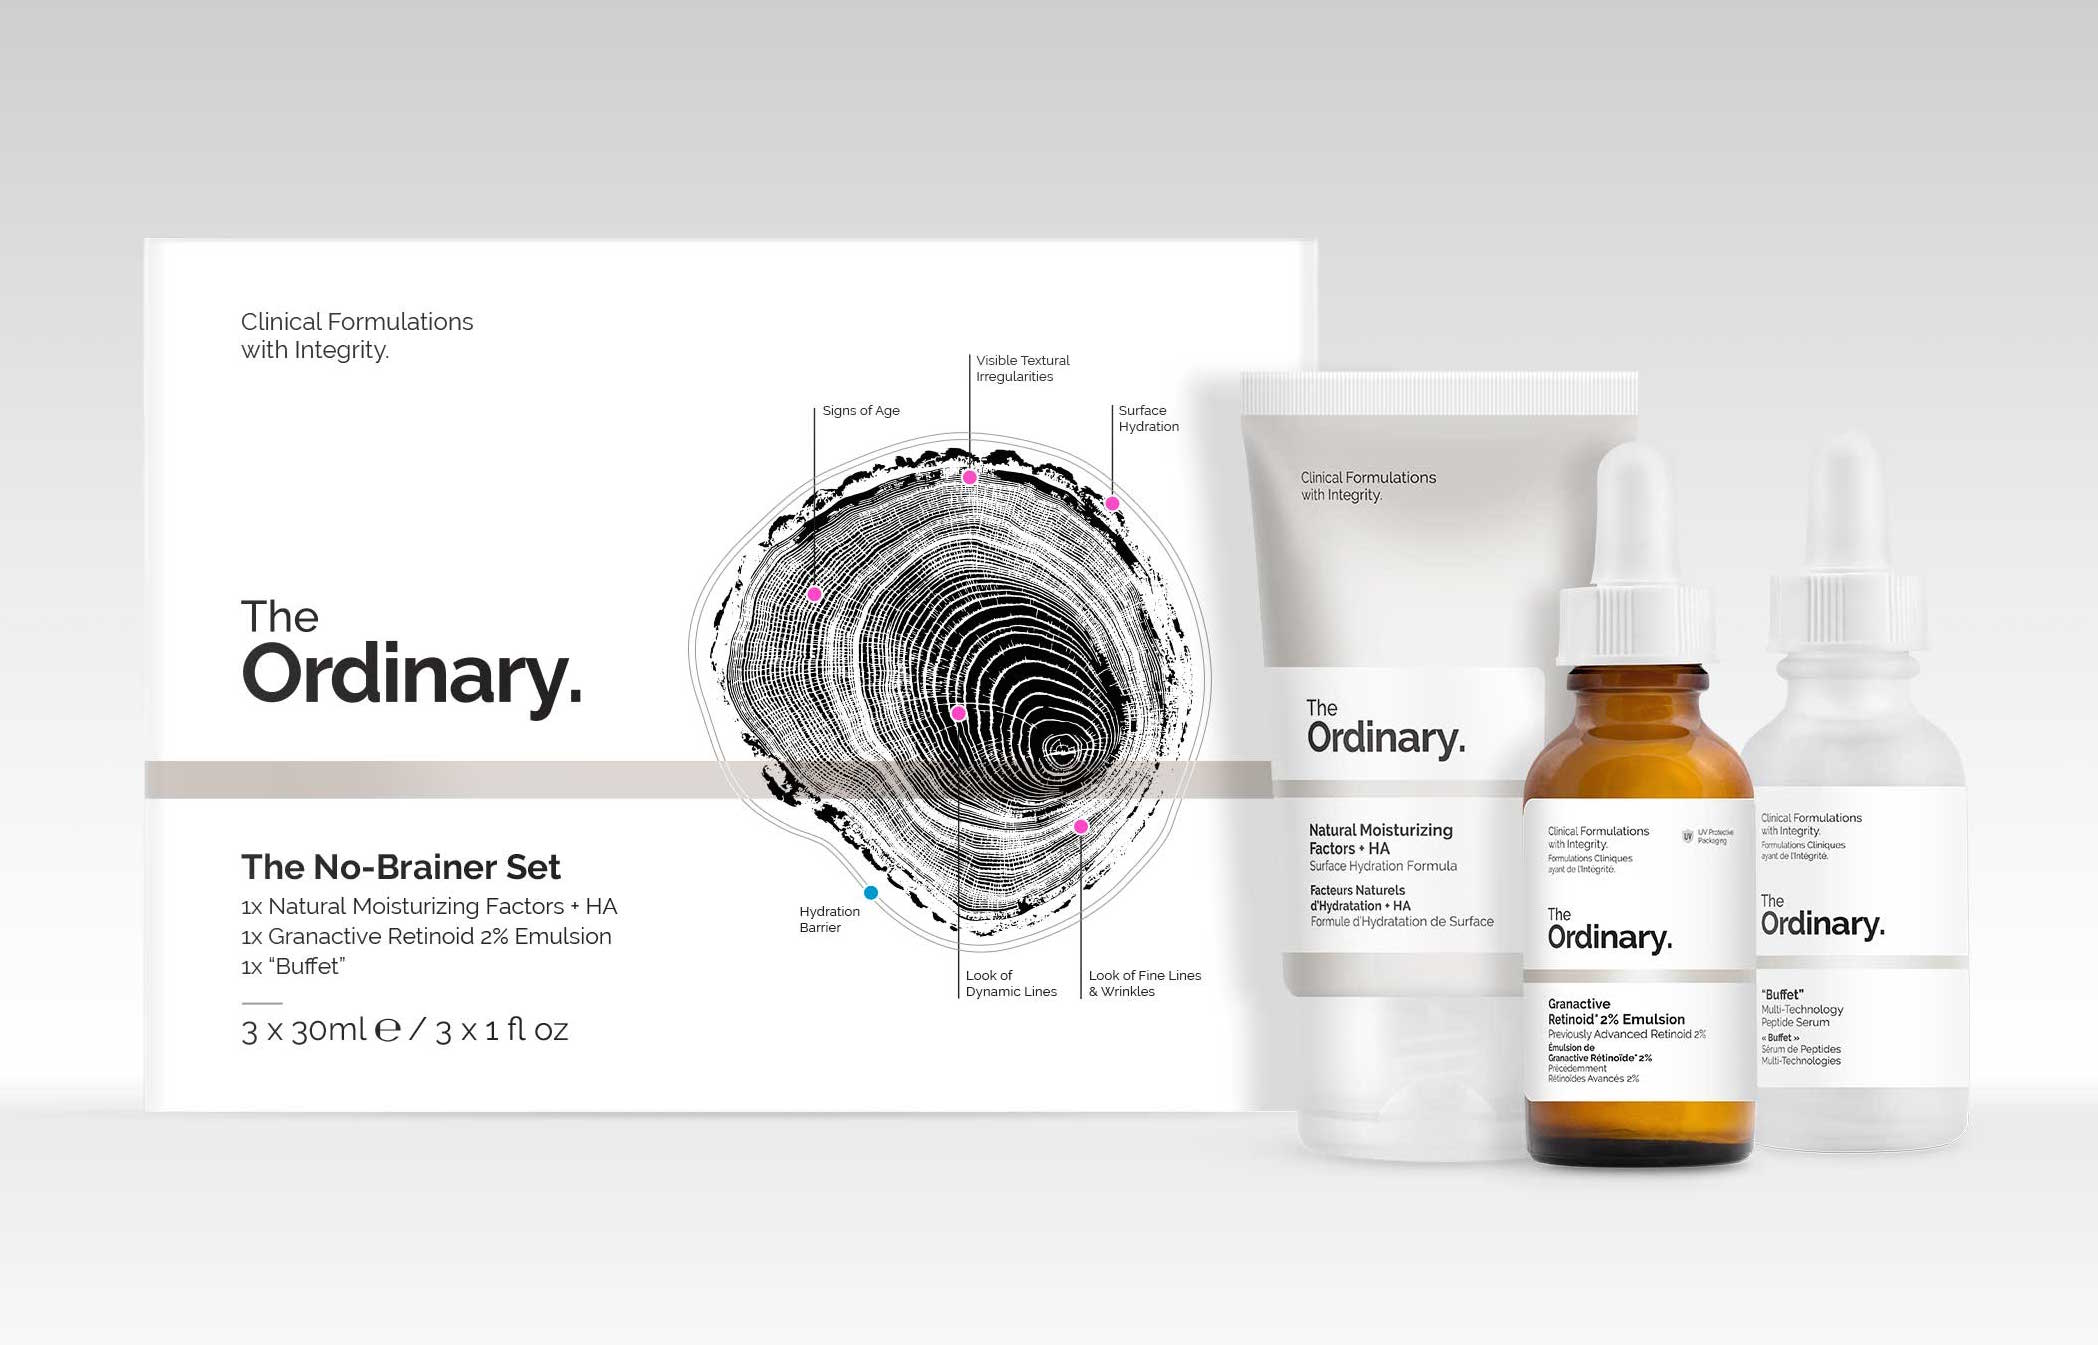 Affordable skin care brand The Ordinary just launched at Sephora today with a must-have set